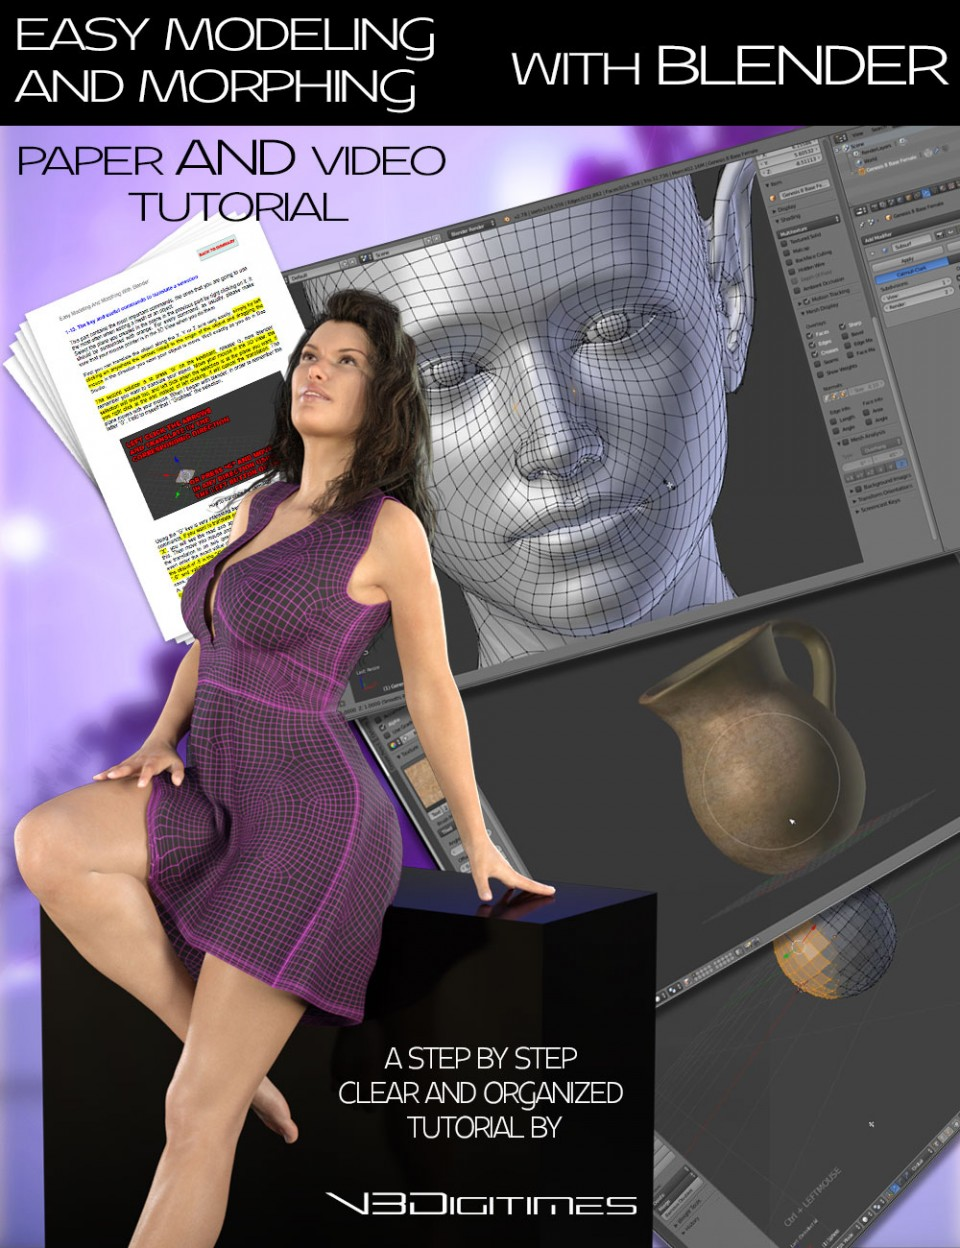 Easy Modeling And Morphing With Blender 8 Video 6 Hour Course & PDF